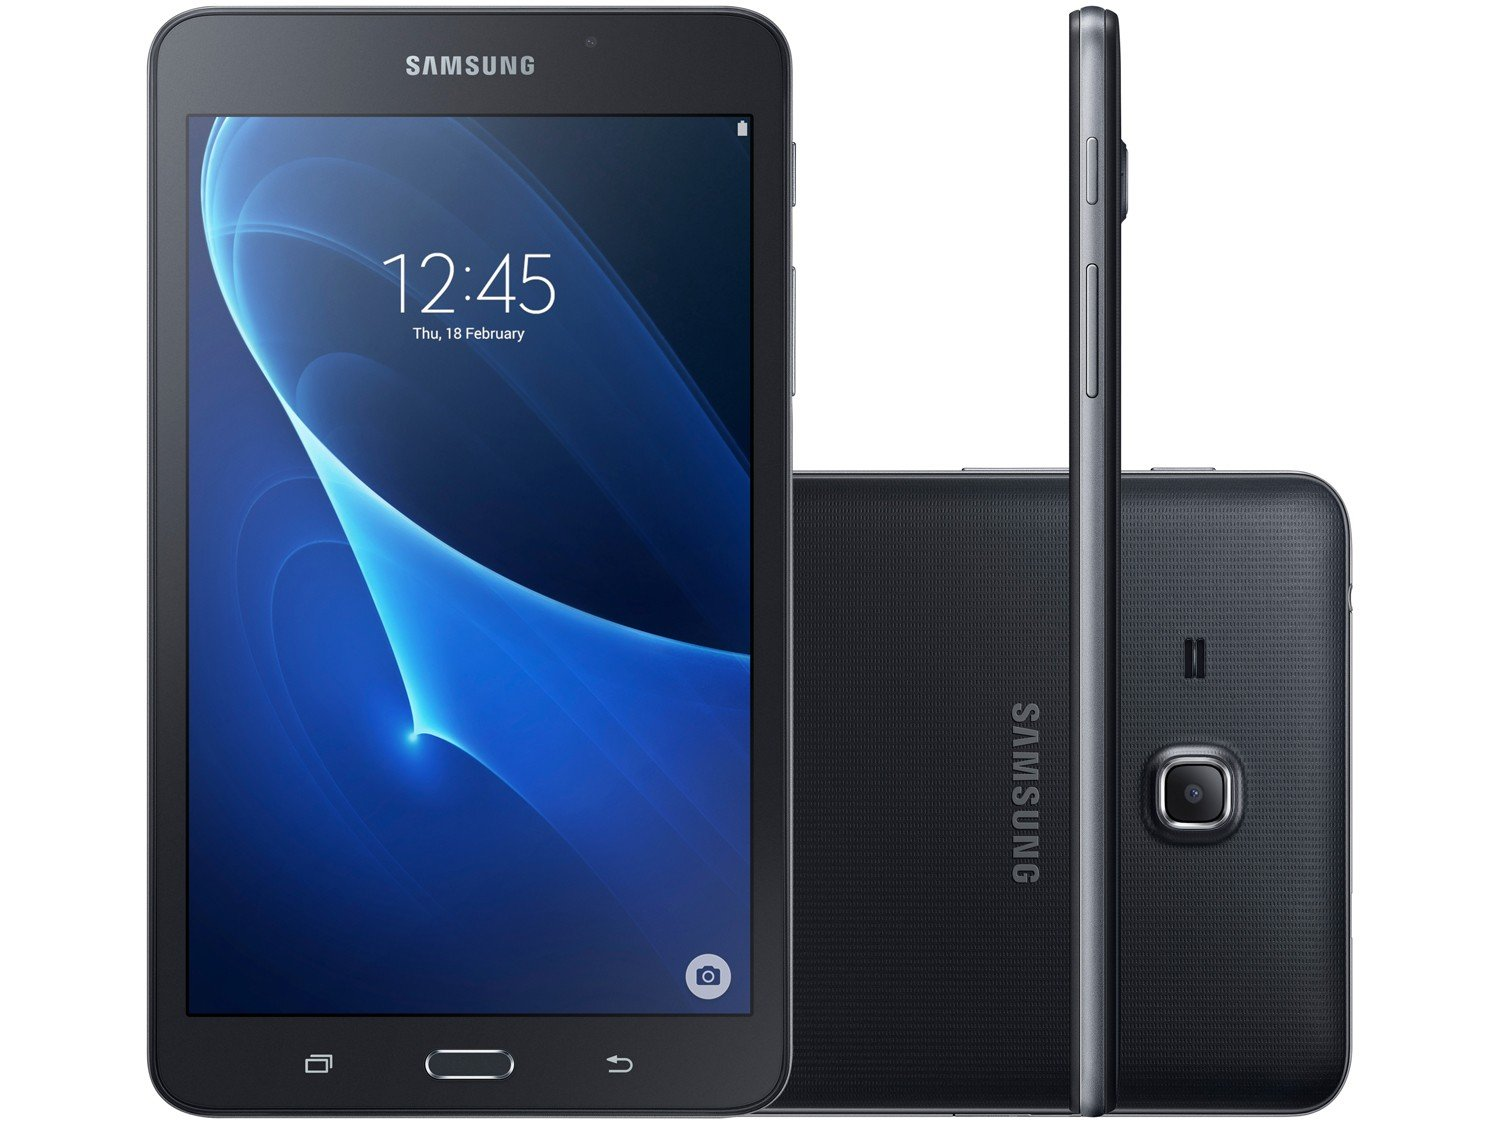 Foto 1 - Tablet Samsung Galaxy Tab A T285 8GB 7 4G Wi-Fi - Android 5.1 Proc. Quad Core Câmera 5MP + Frontal